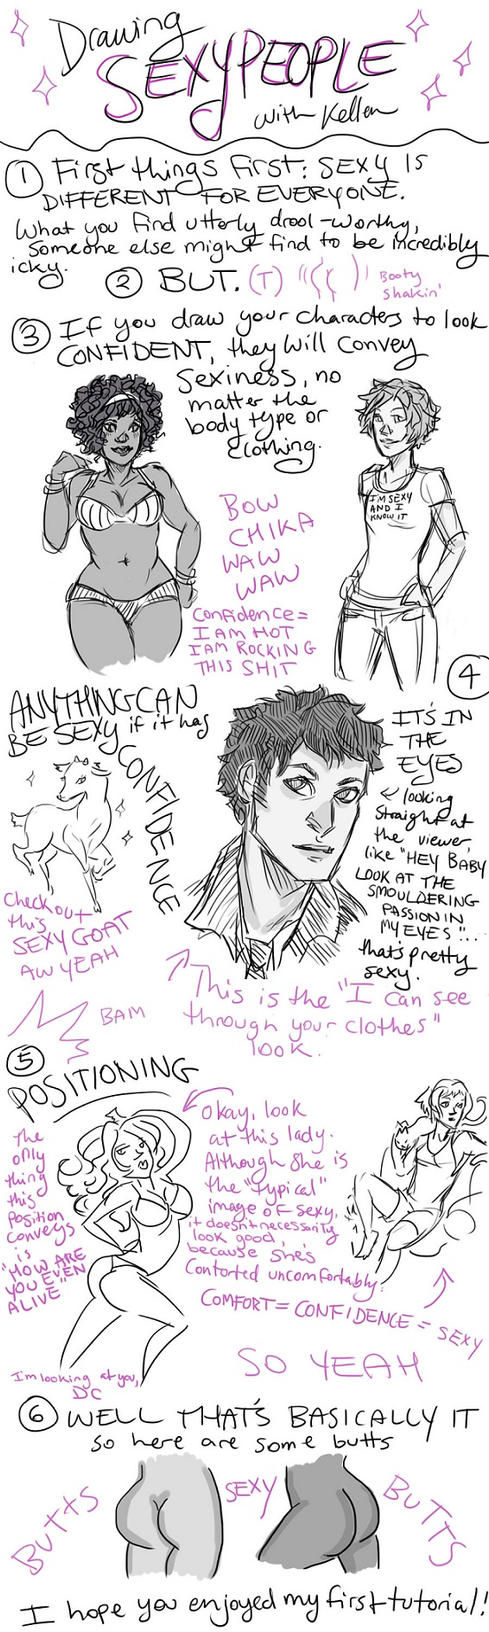 DRAWING SEXY PEOPLE: A TUTORIAL by karuhichan359